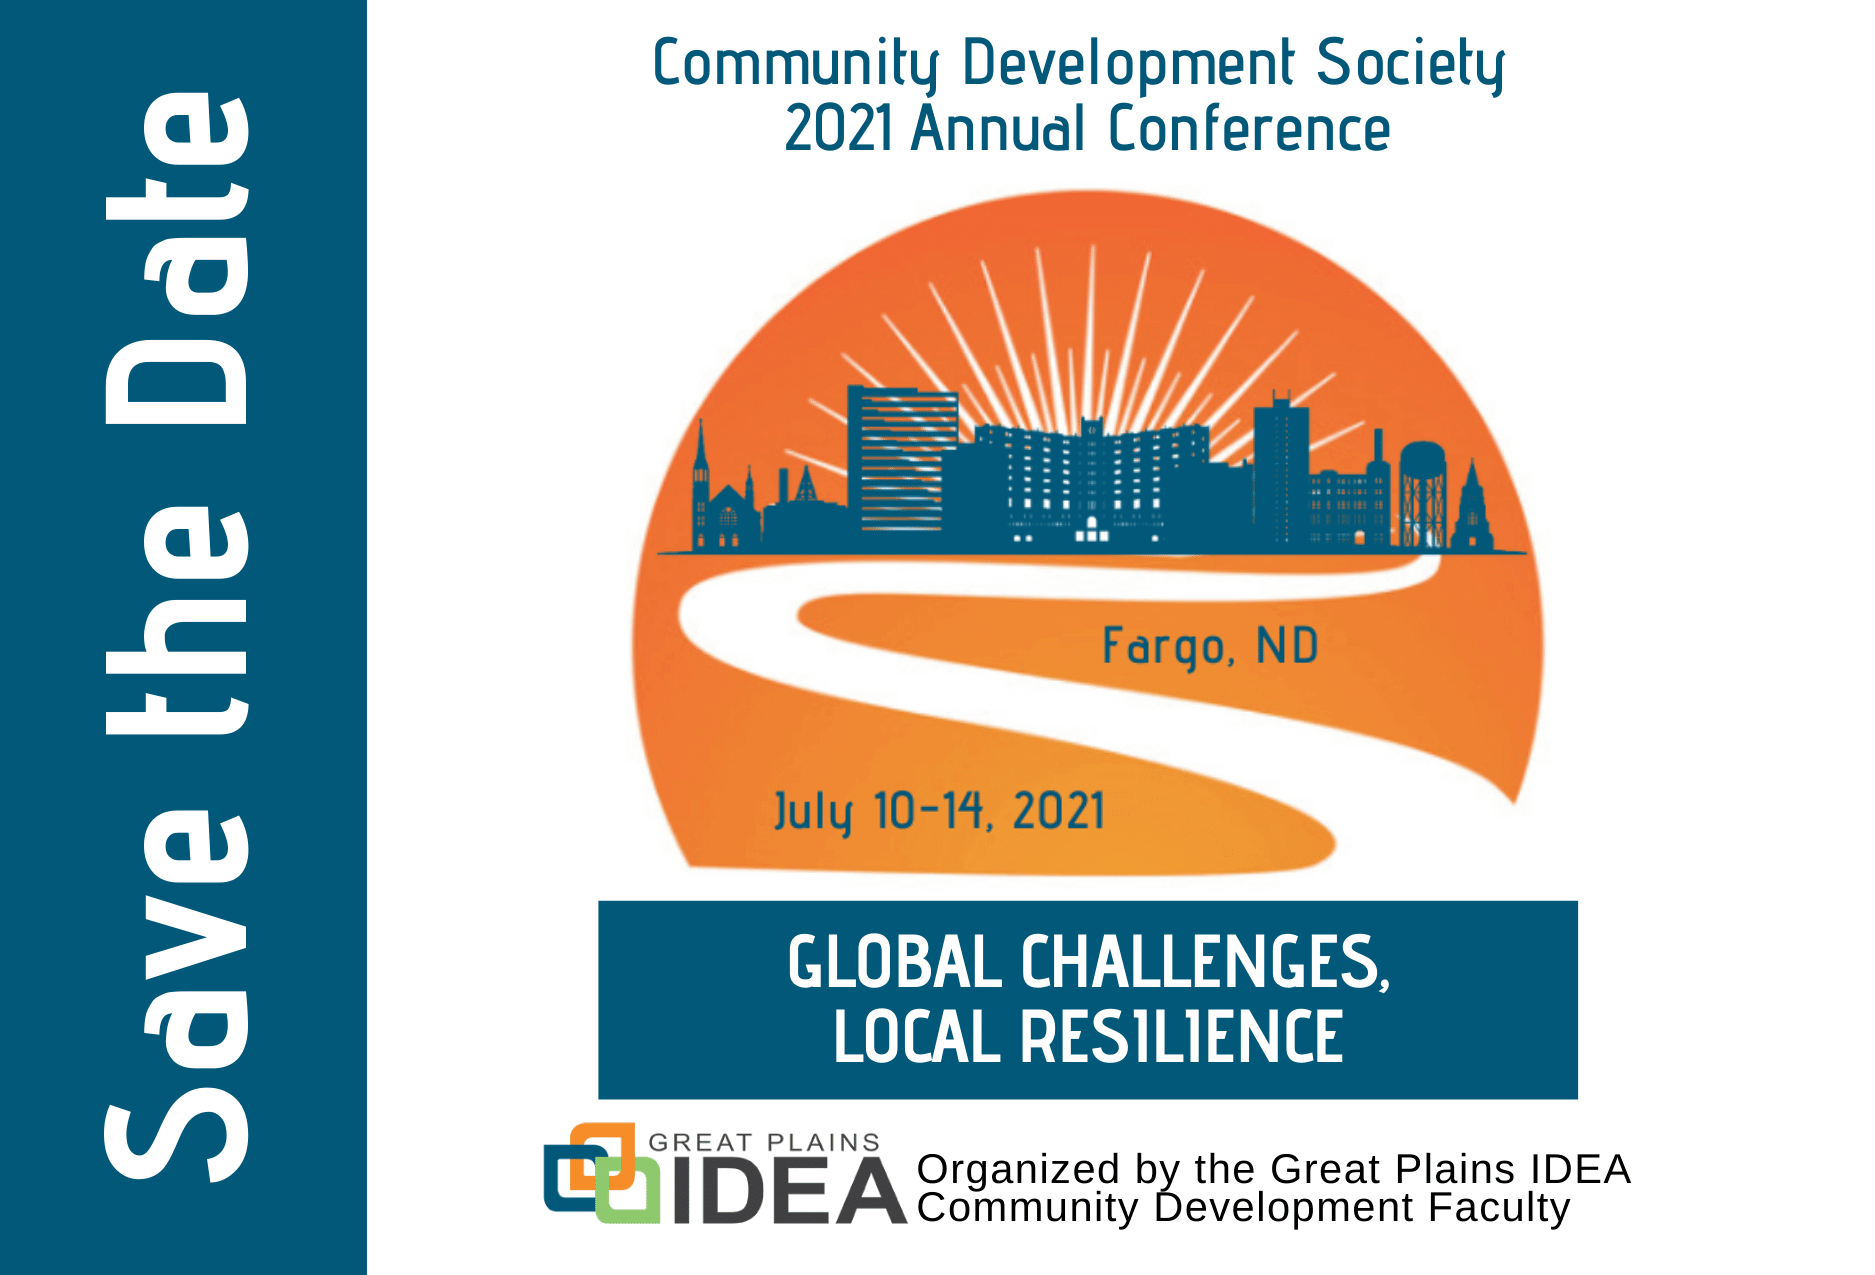 CDS conference save-the-date message for the 2021 annual conference to be held July 10-14 in Fargo, ND.